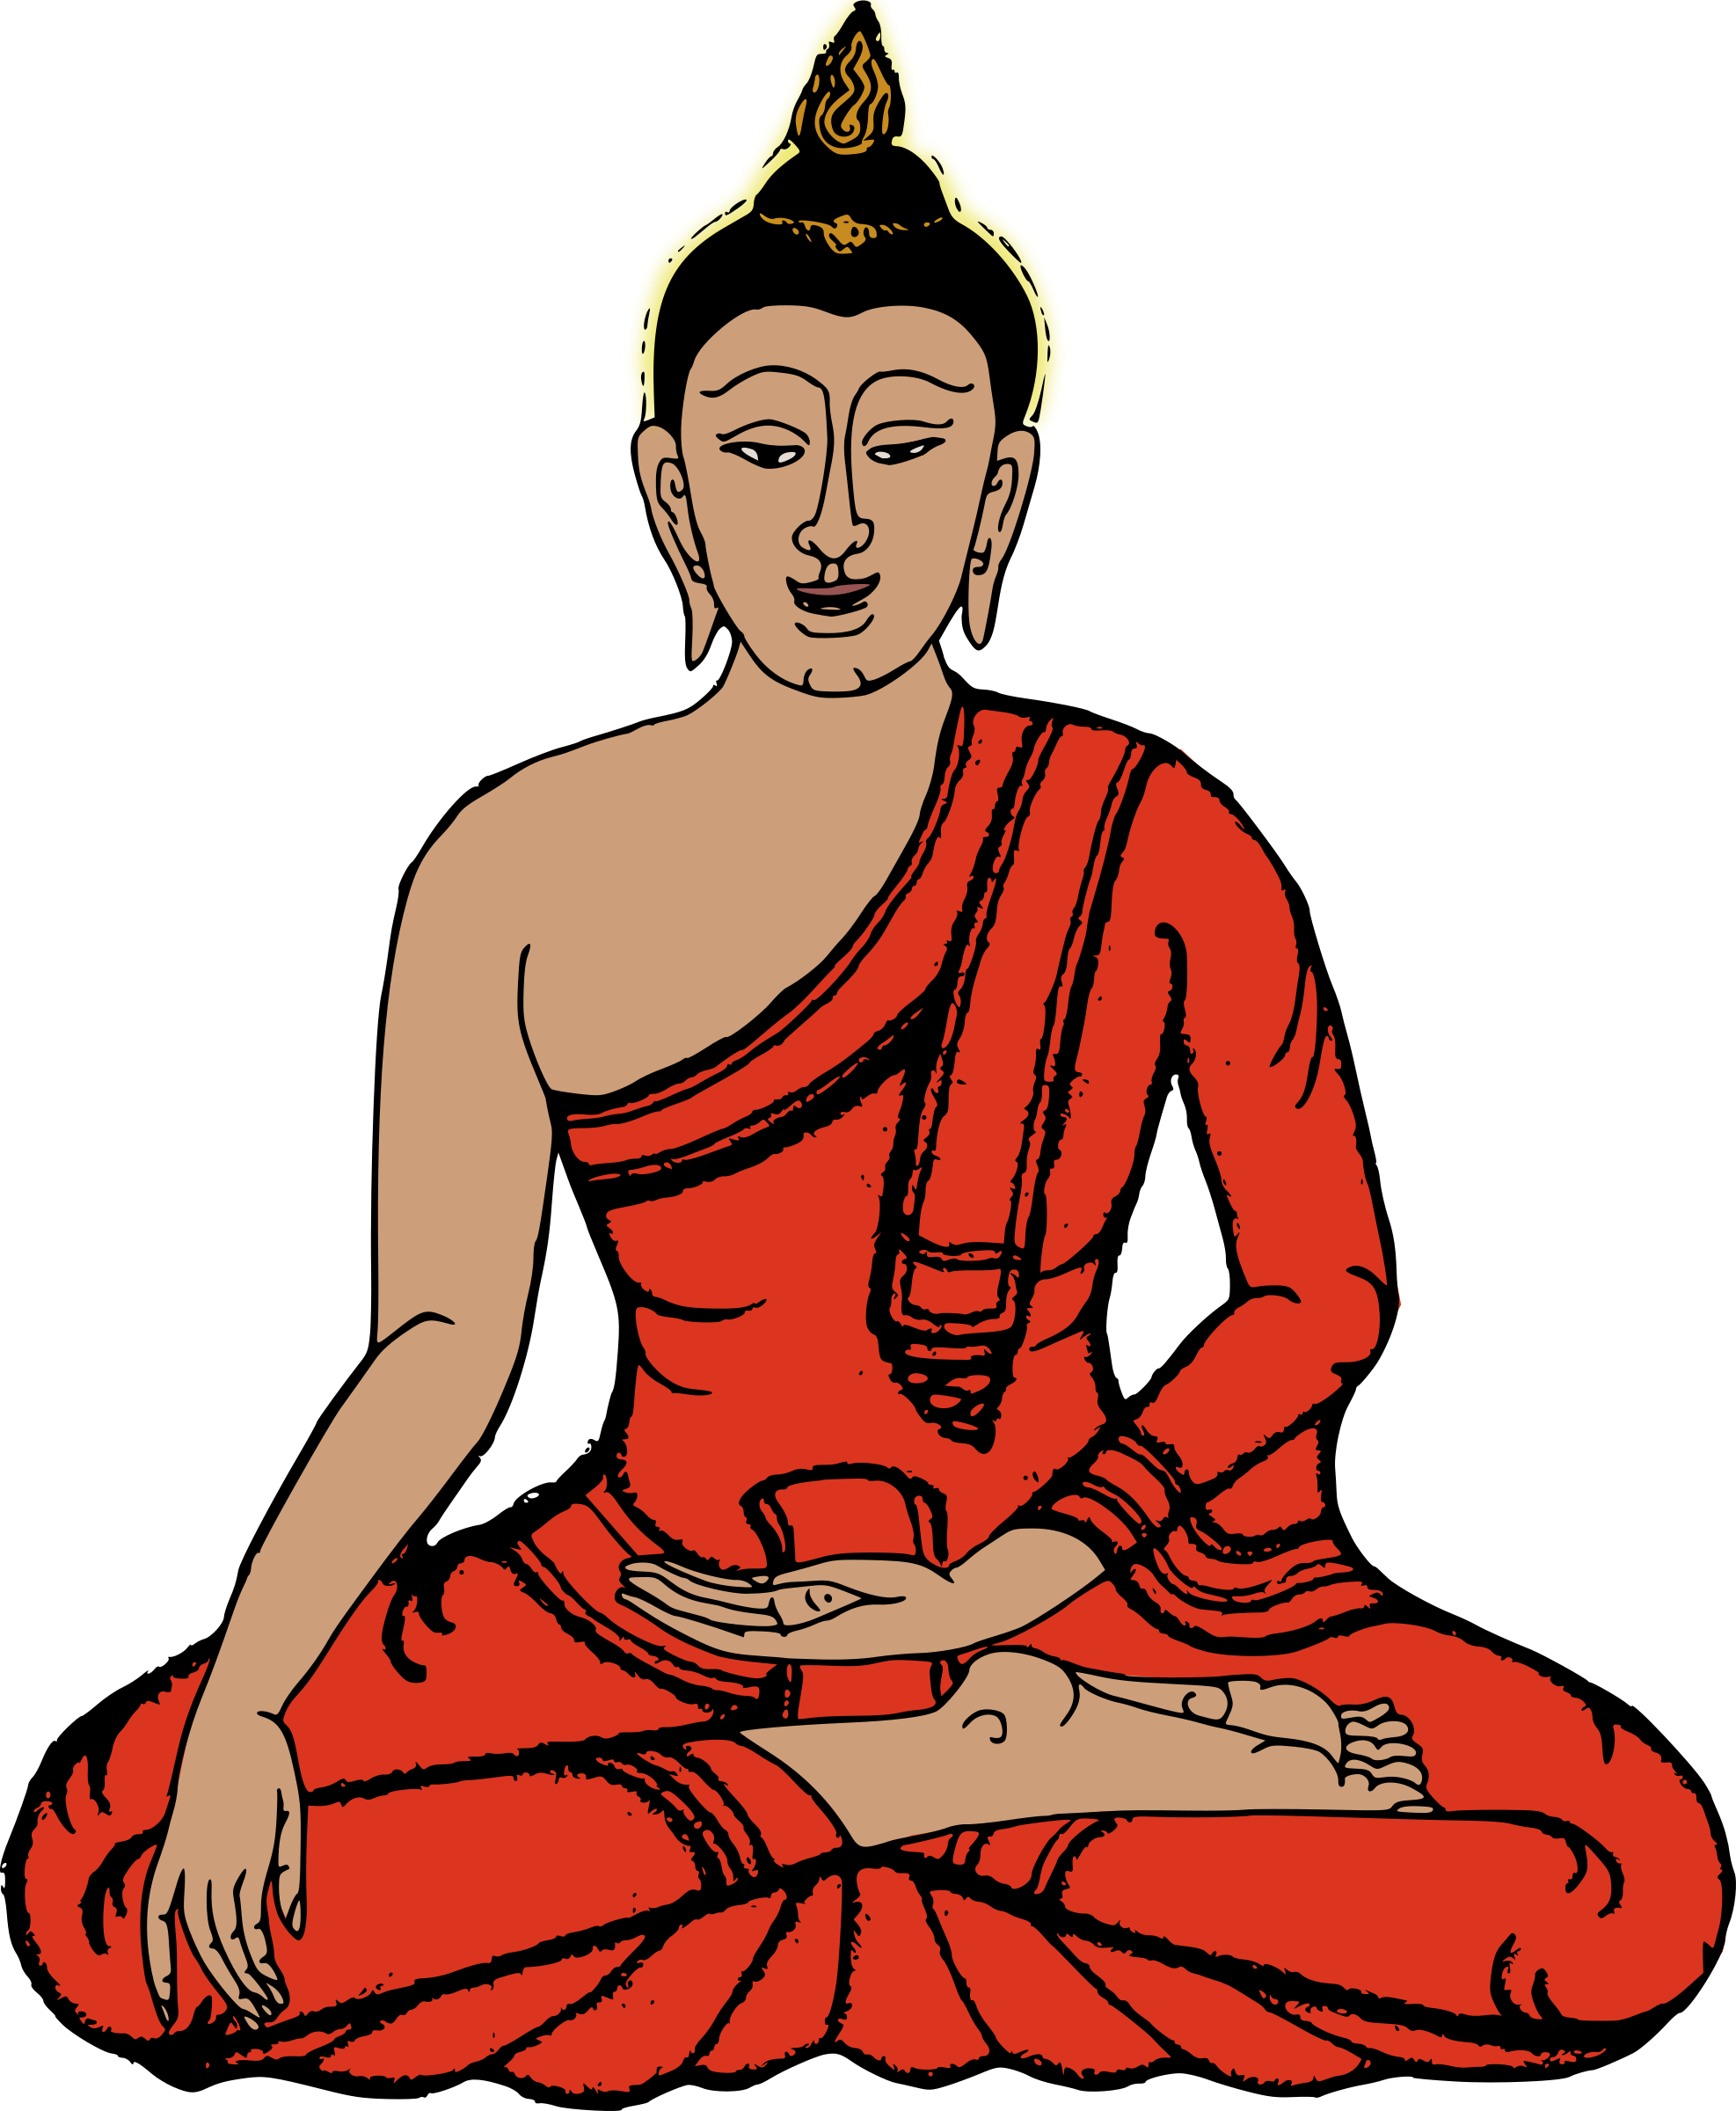 image library library Sitting big image png. Buddha clipart character